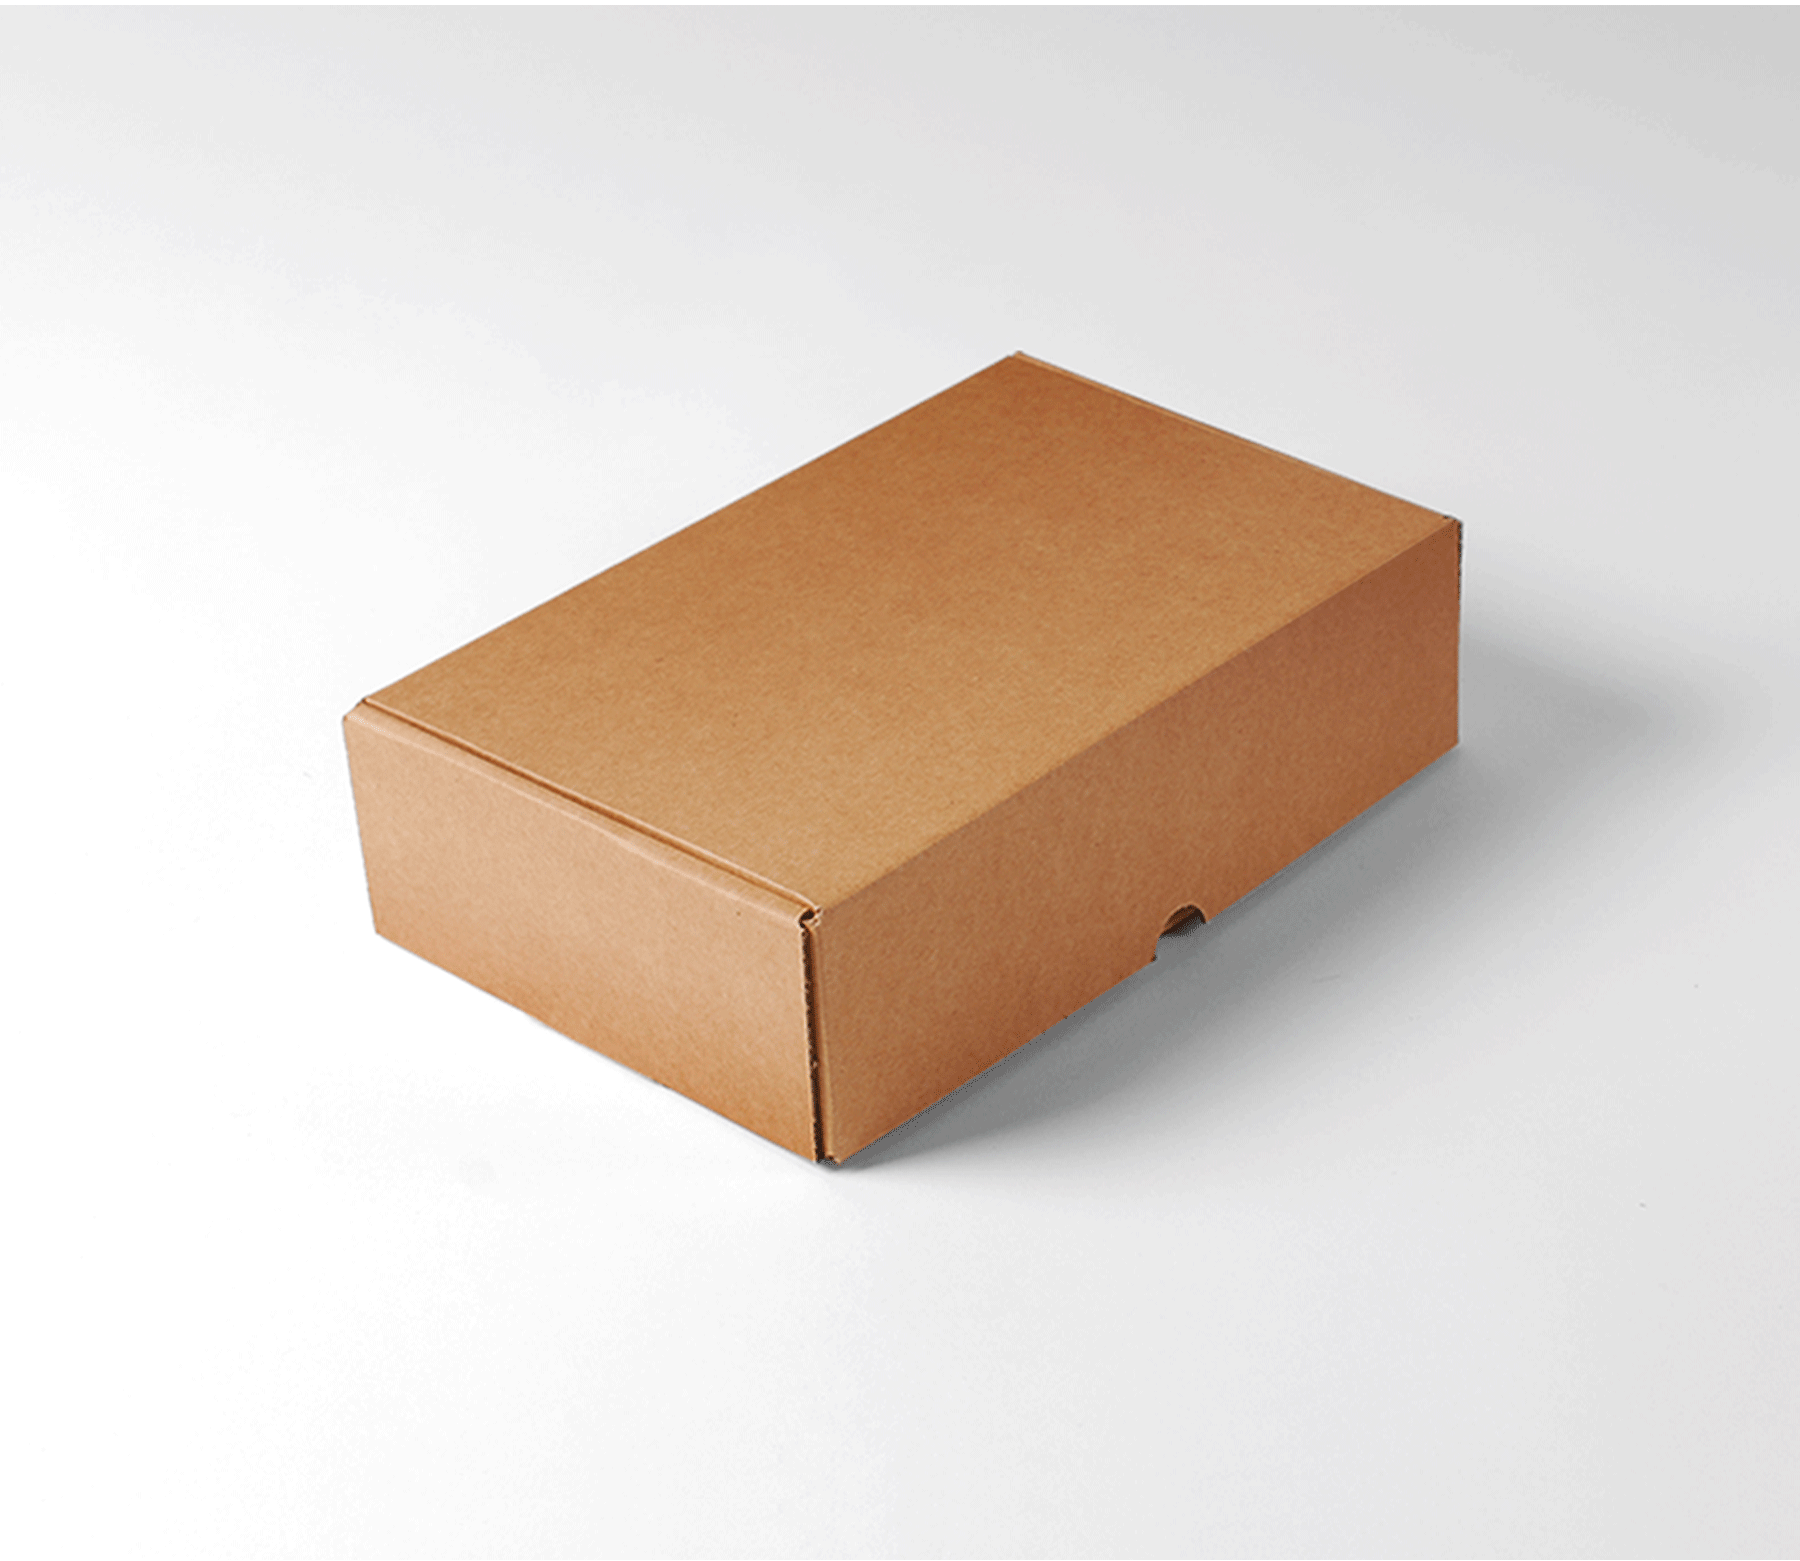 Packaging Boxes And Gift Boxes Selfpackaging